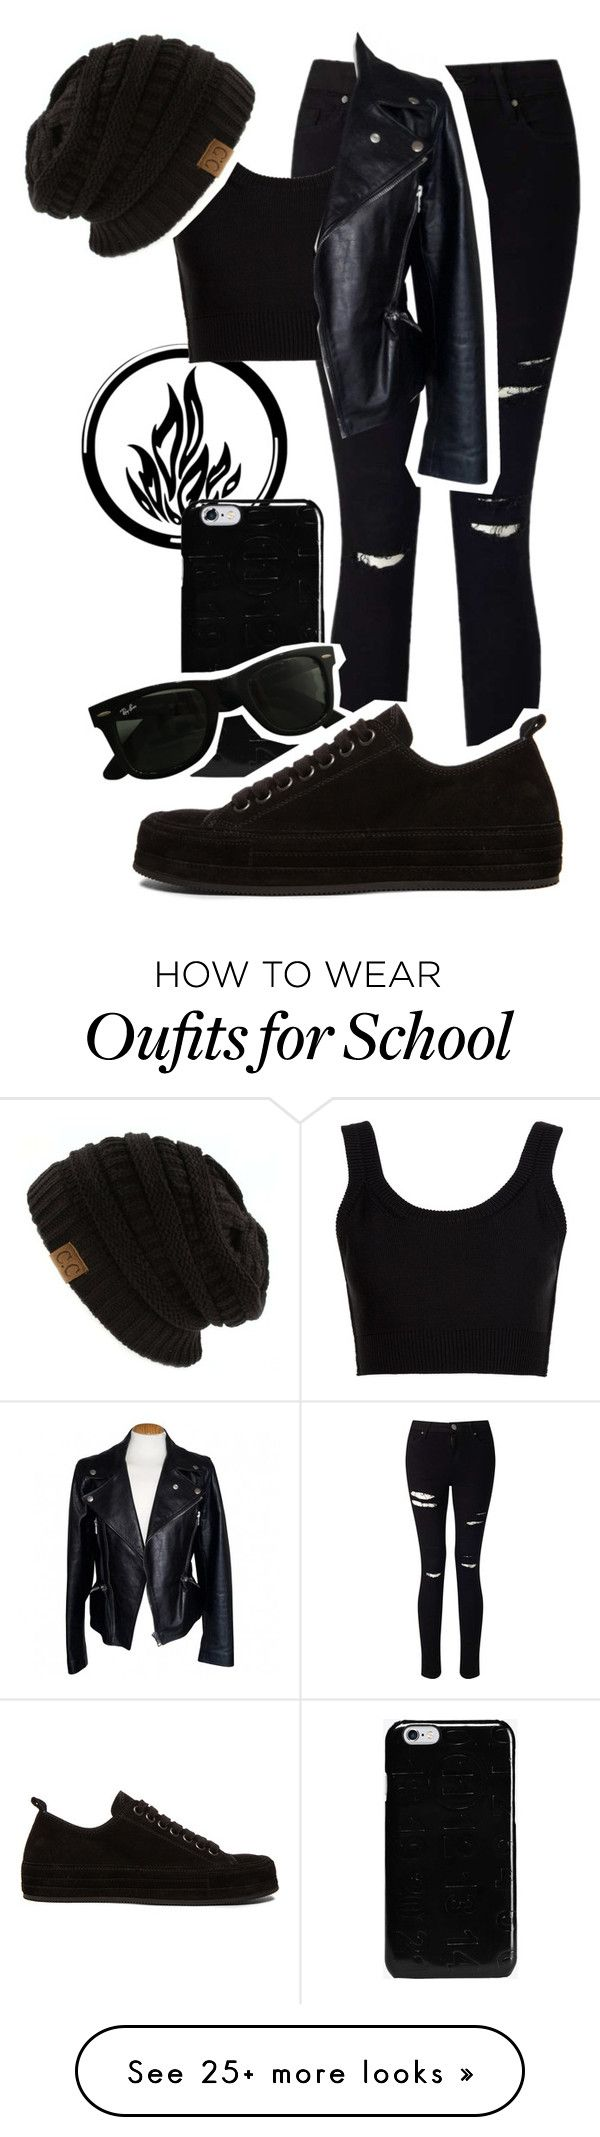 """Dauntless - Back to school"" by hipstermonkey12 on Polyvore featuring Miss Selfridge, Calvin Klein Collection, Maison Margiela, Alexander McQueen, Ray-Ban and Ann Demeulemeester"